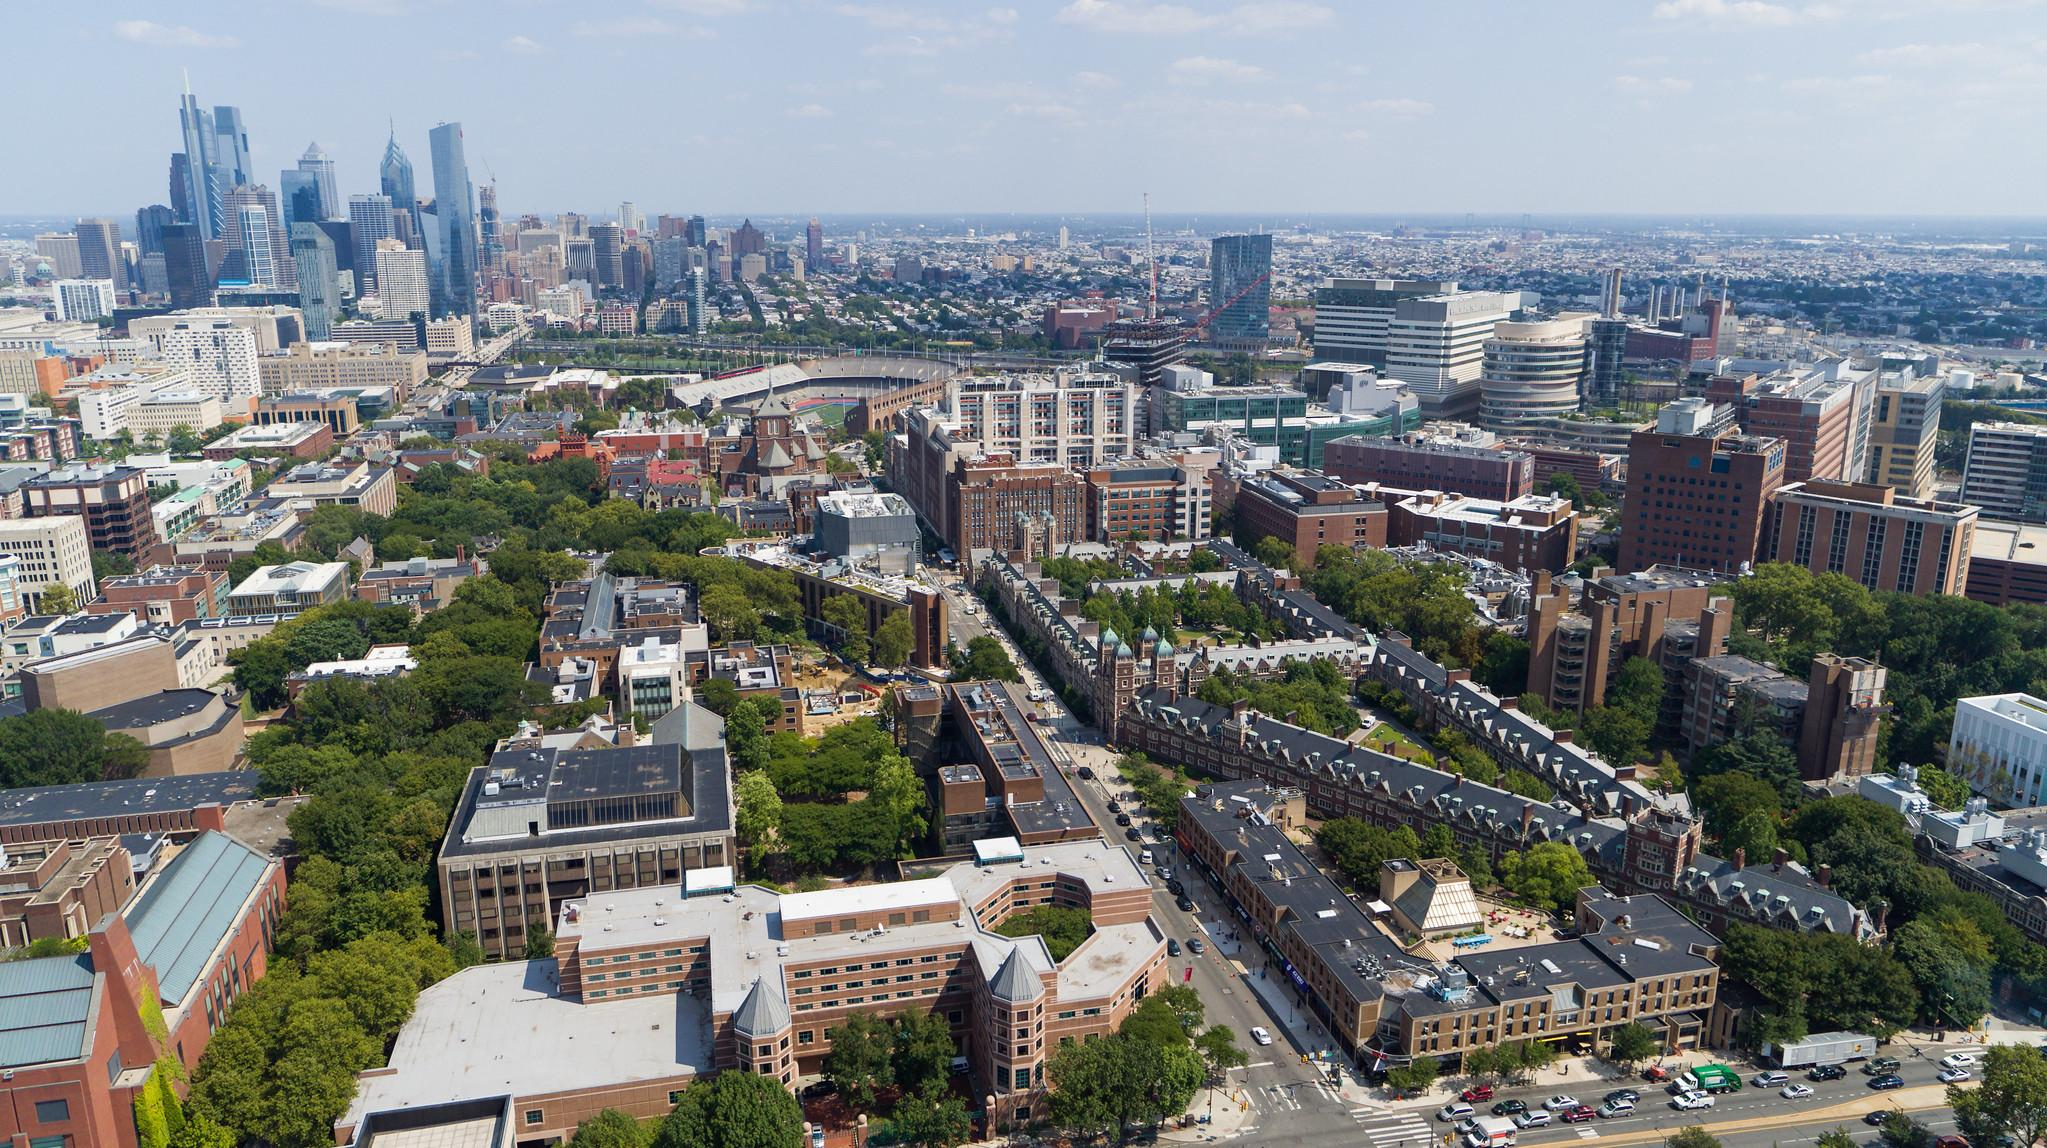 Aerial View of Penn Campus